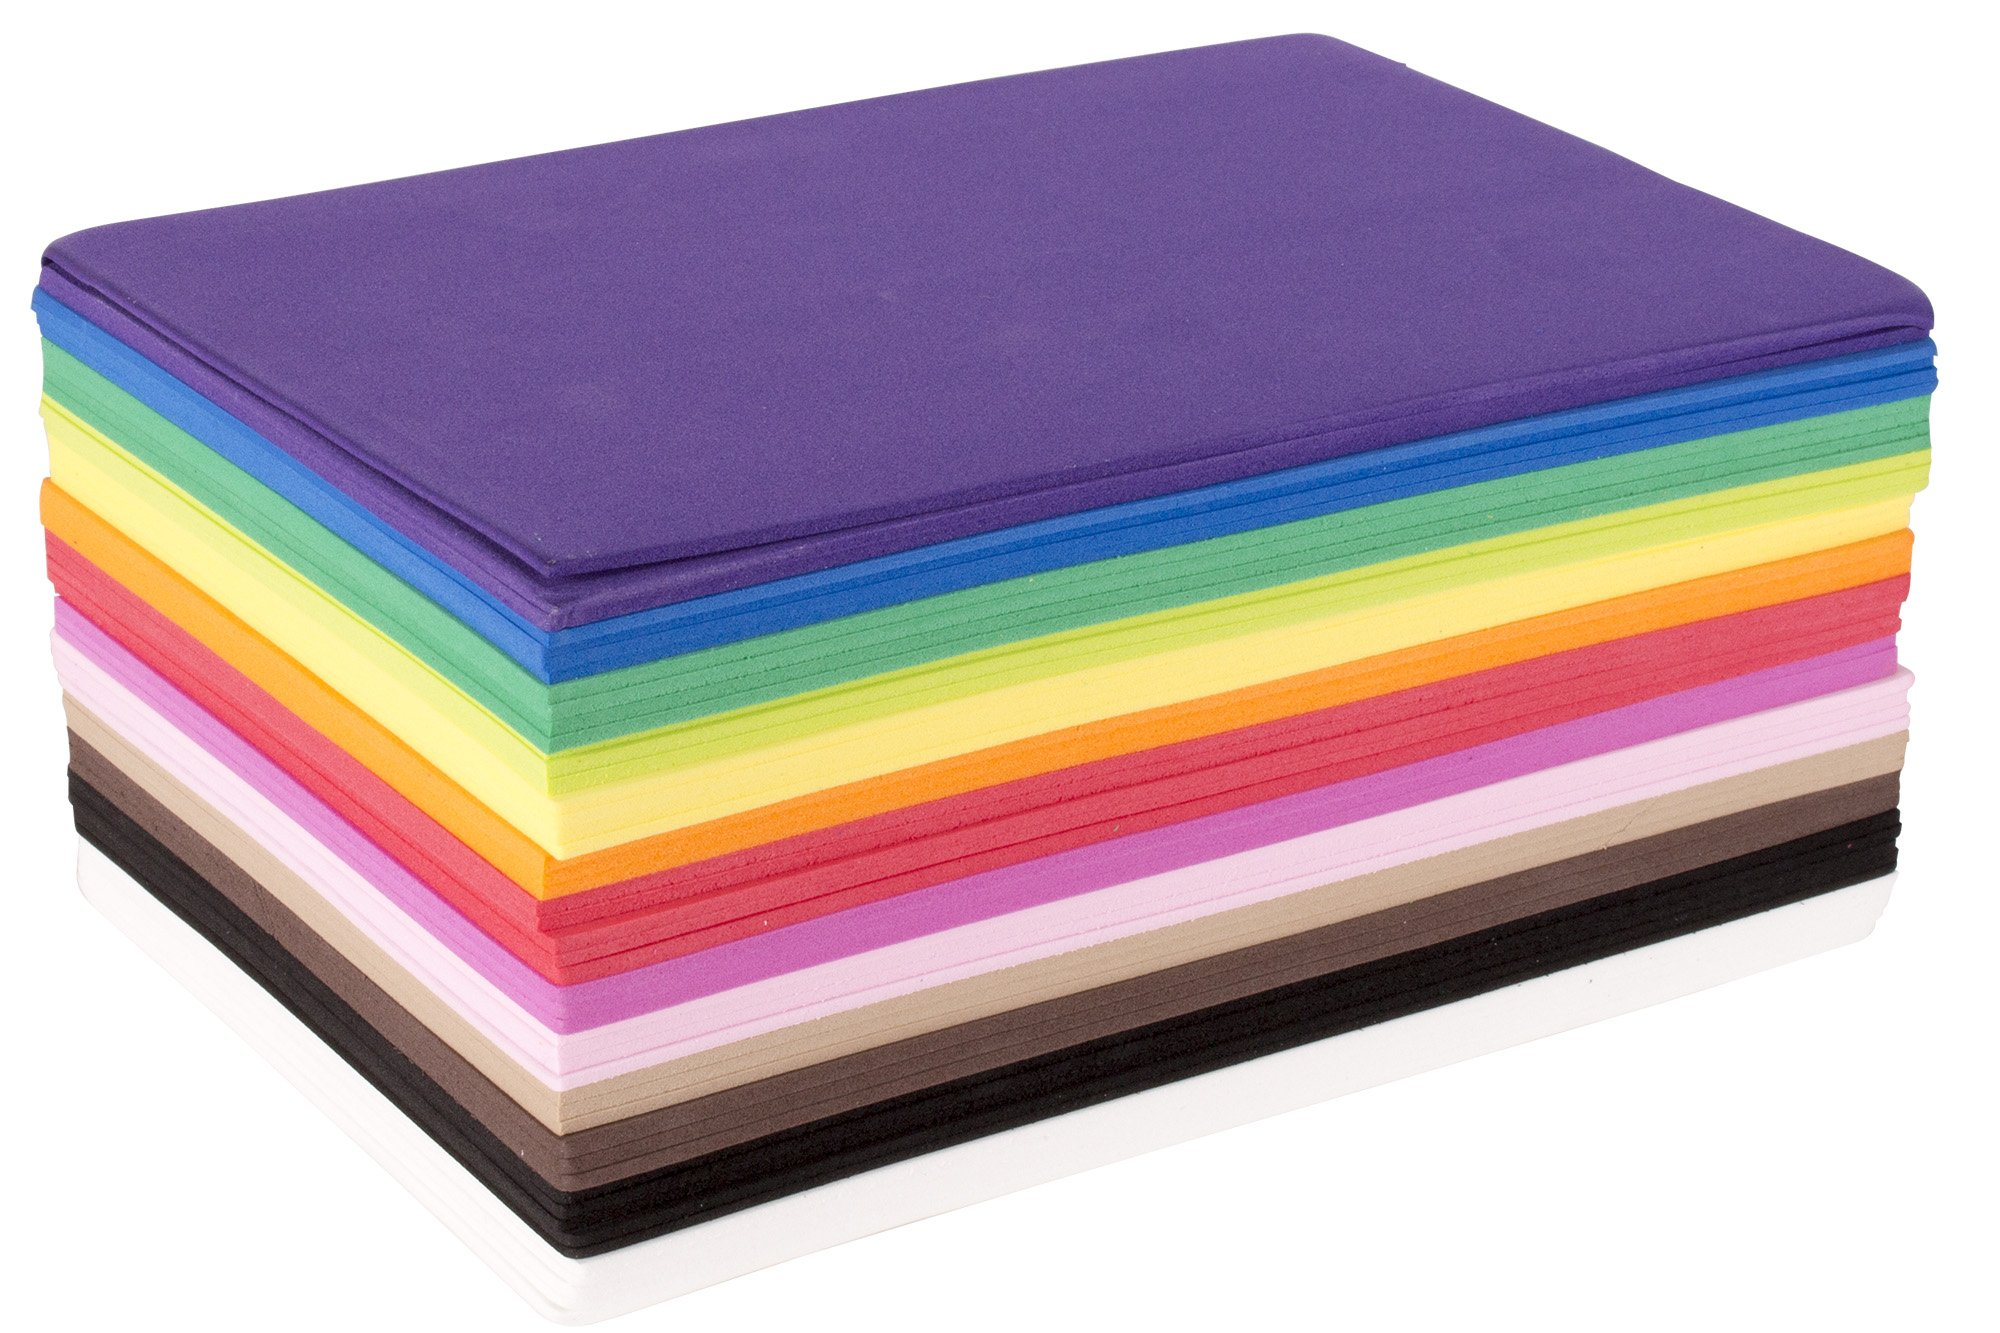 Cheap 2 Inch Thick Foam Sheets, find 2 Inch Thick Foam Sheets deals